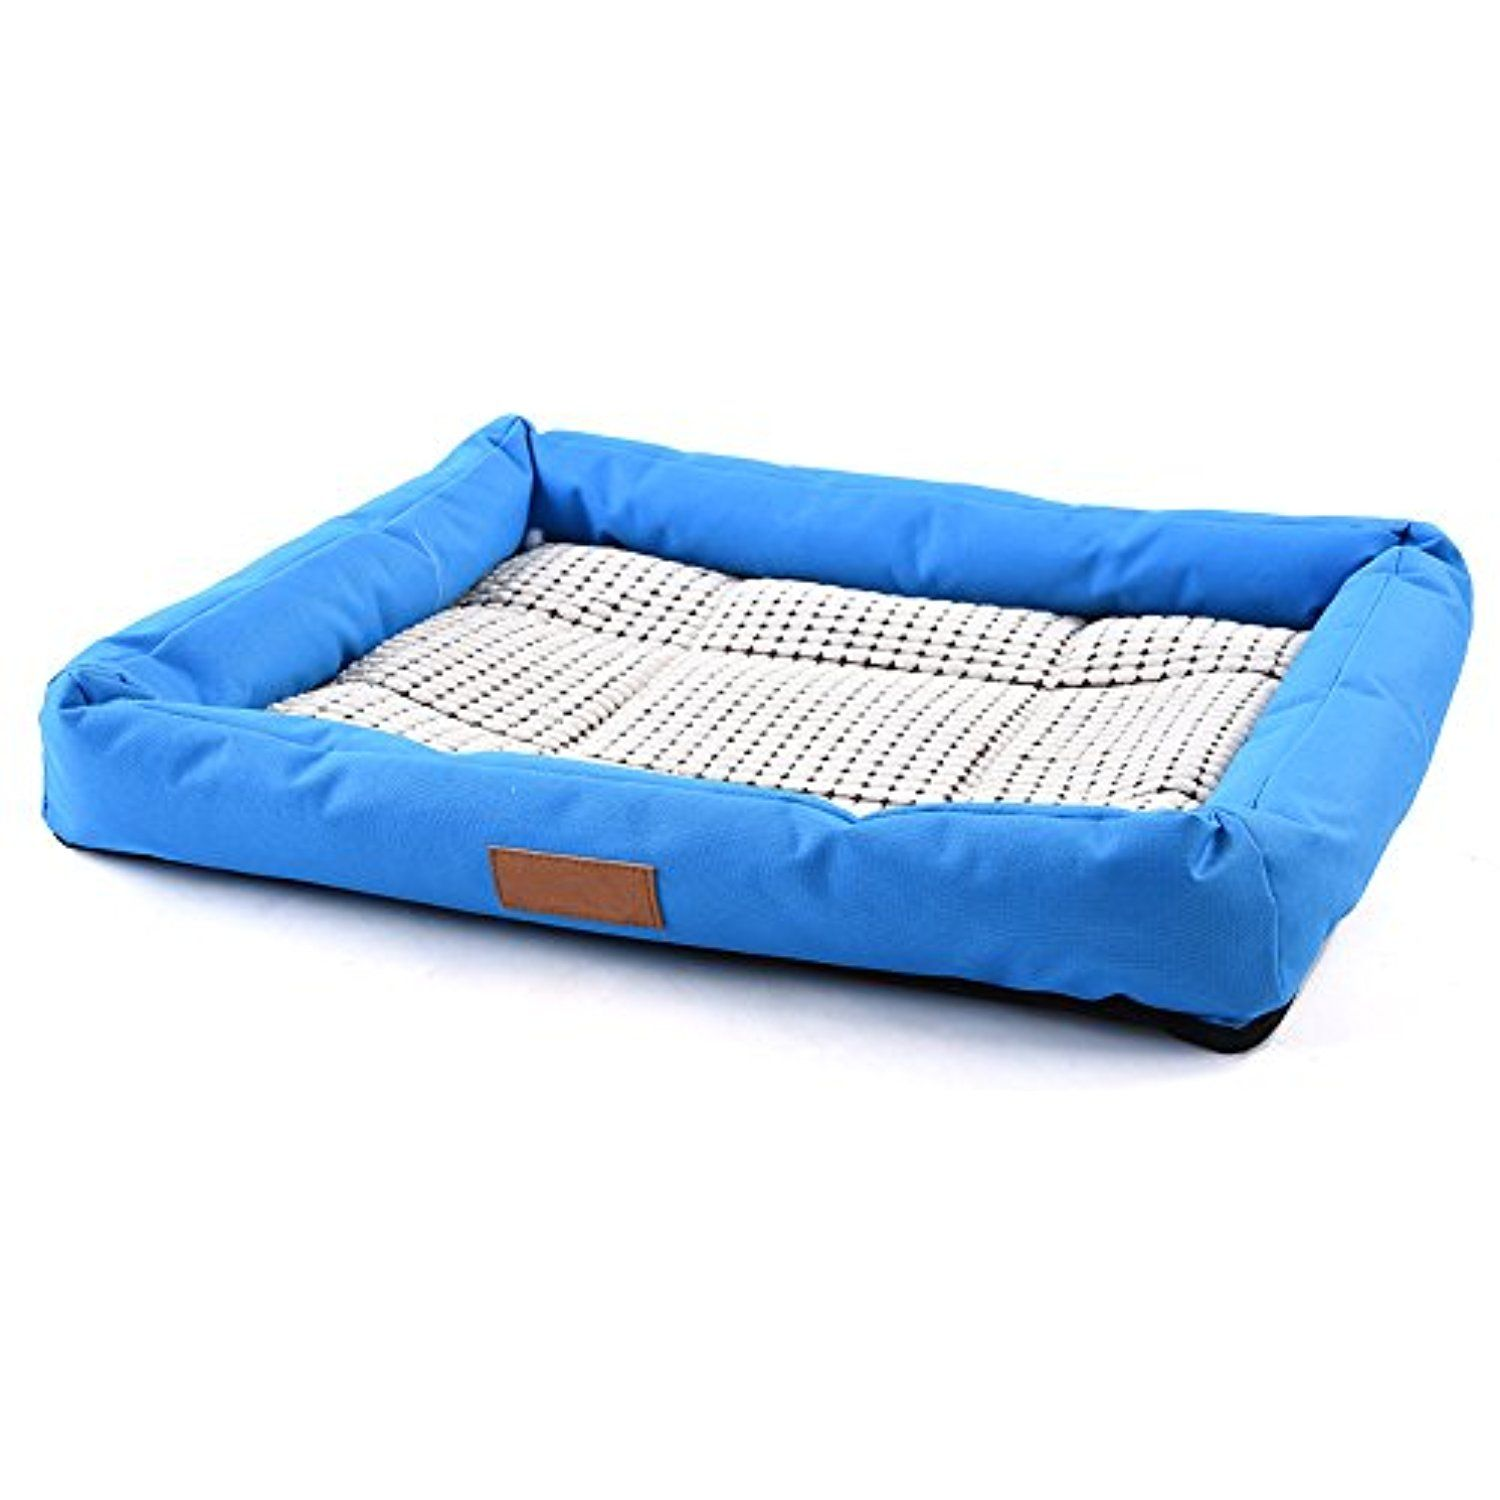 toxic non mats pet com s dogs gel itm mat v bed multi summer pad tongtool dog for cooling mattress cat